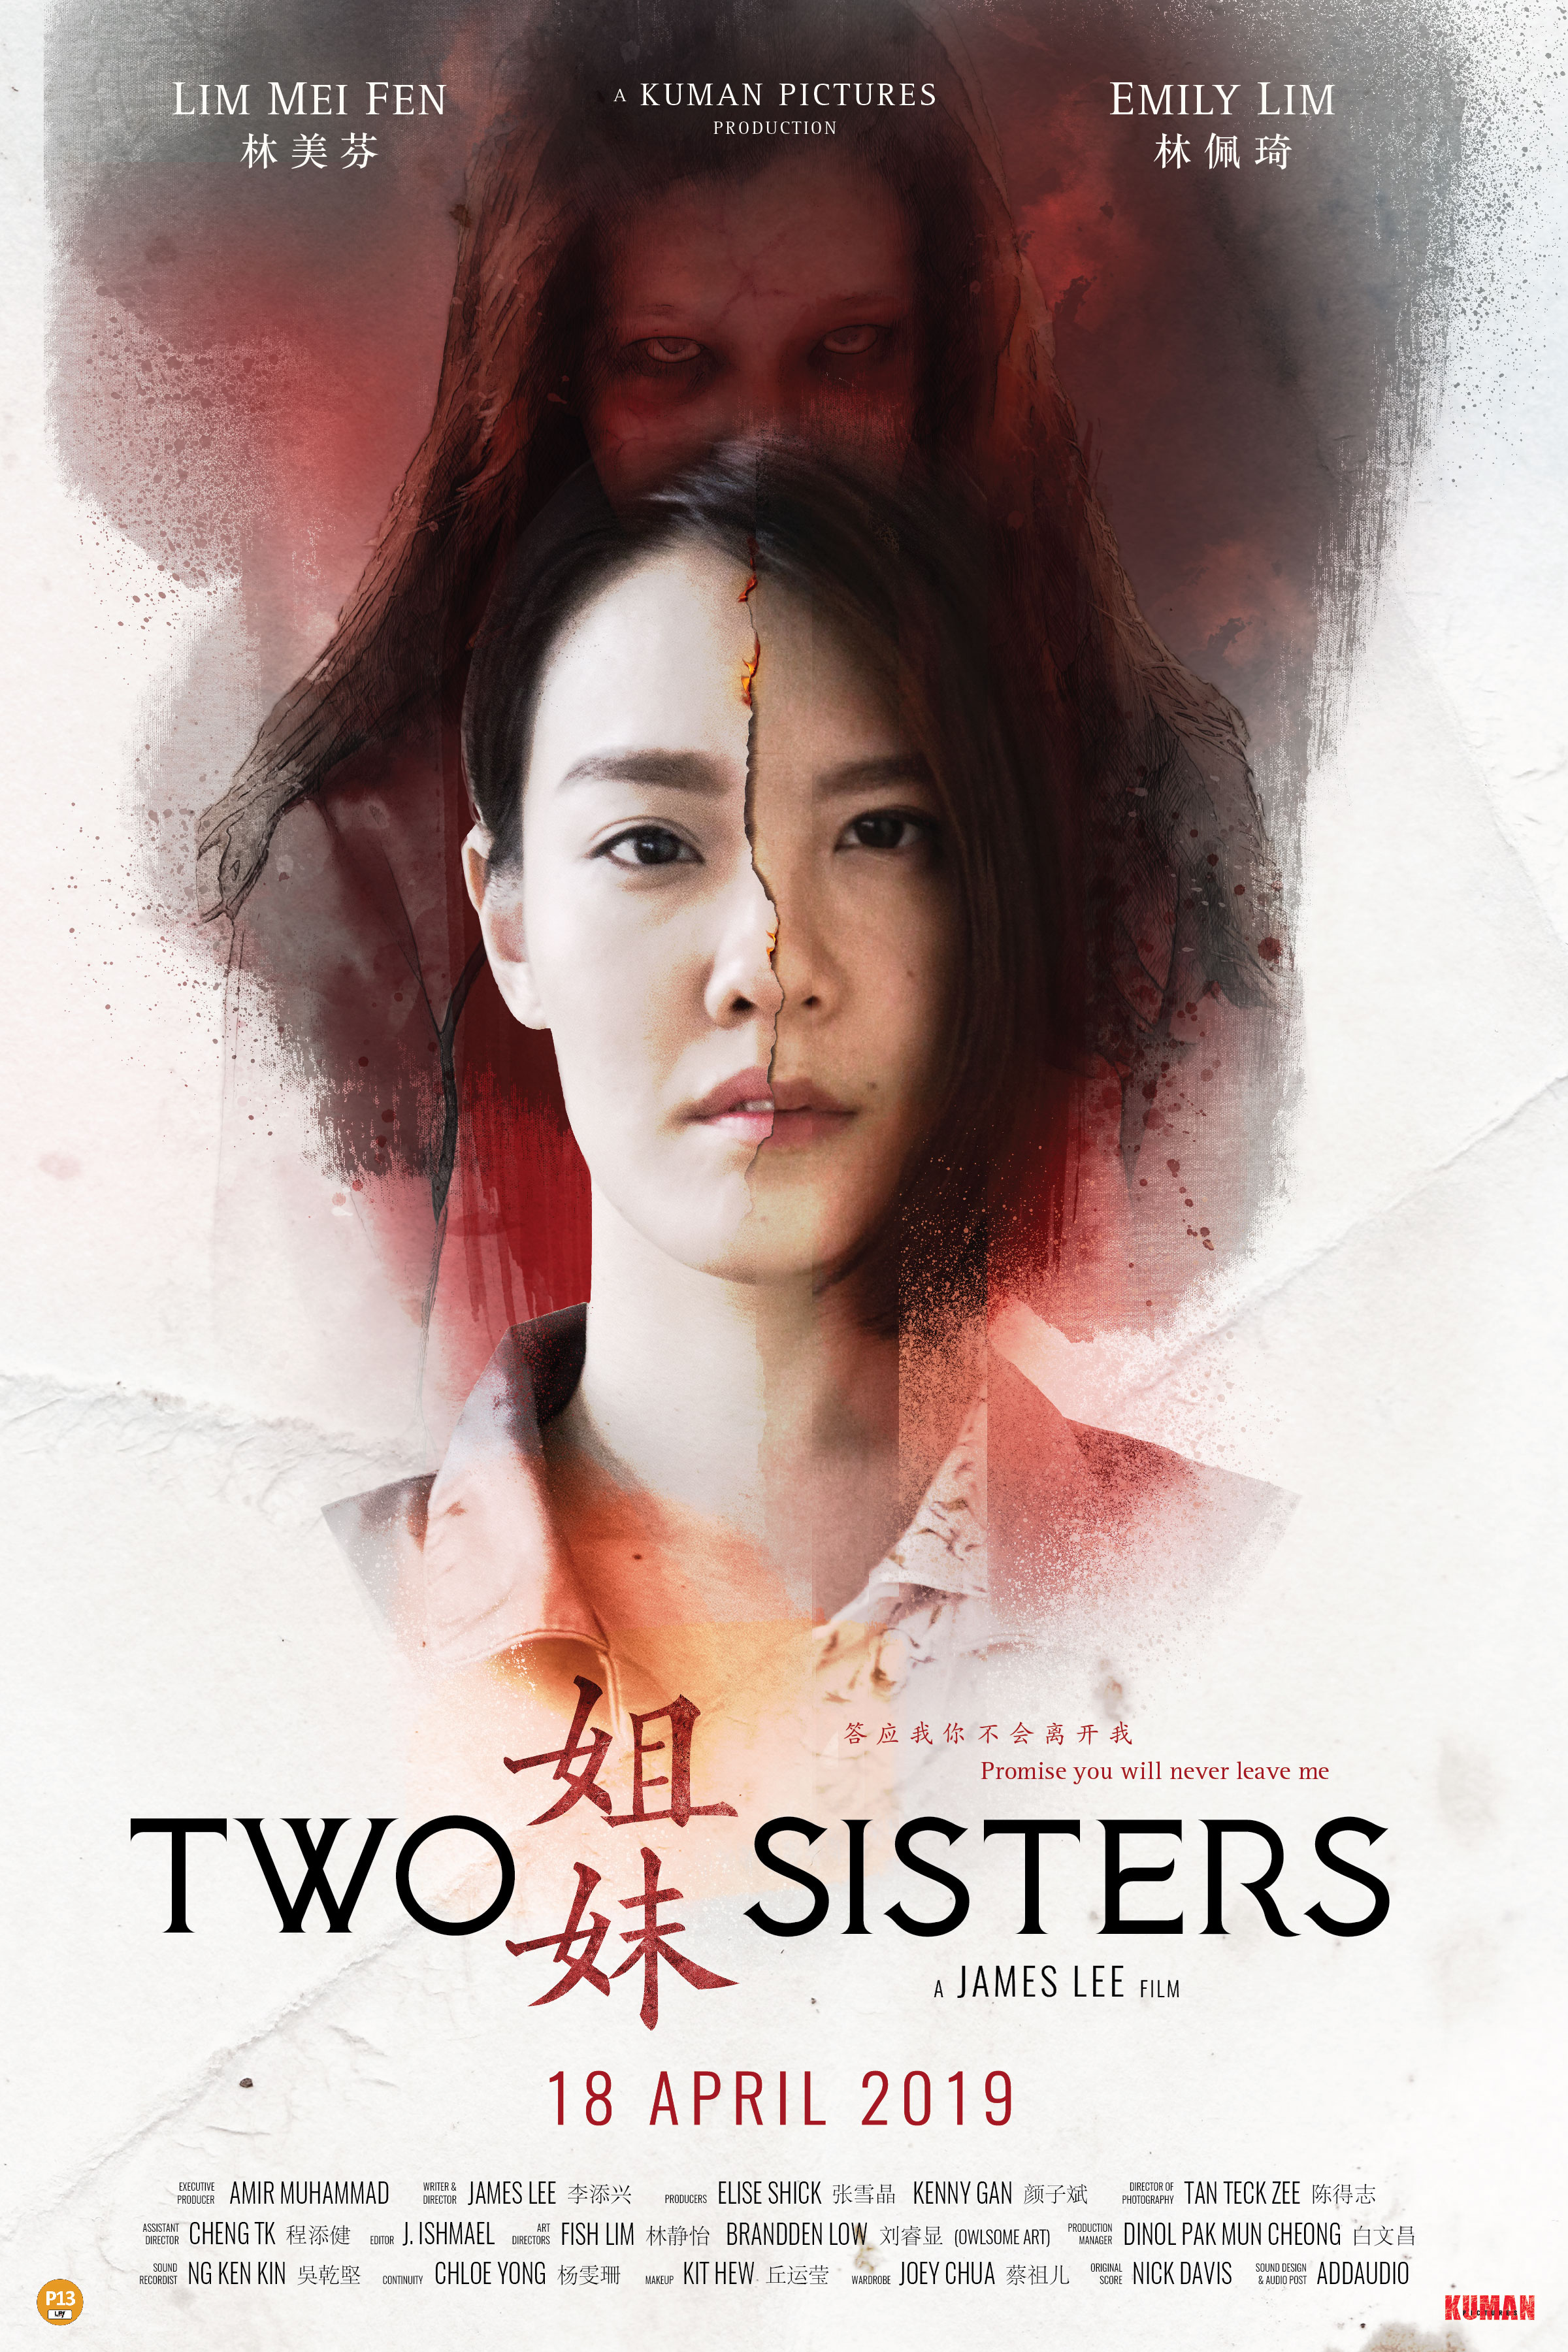 Shot in 13 days, TWO SISTERS (2019) will make its way to Malaysian cinemas on 18 April. It tells a story of two sisters reunite after one of them is discharged from an asylum. Upon returning to their abandoned family home, a dark and tragic family secret starts to unfold.  Main cast: Emily Lim, Lim Mei Fen  Director and Scriptwriter: James Lee  Executive Producer: Amir Muhammad  Producers: Elise Shick, Kenny Gan  Director of Photography: Tan Teck Zee  Music Composer: Nick Davis  Audio Post: Addaudio Ex  Assistant Director: TK Cheng  Art Directors: Fish Lim, Brandden Low (Owlsome Art)  Make up Artist: Kit Hew  Wardrobe Stylist: Joey Chua  Production Manager/Location Manager: Dinol Pak Mun Cheong  Editor: J. Ishmael  Colorist: Clara Yang